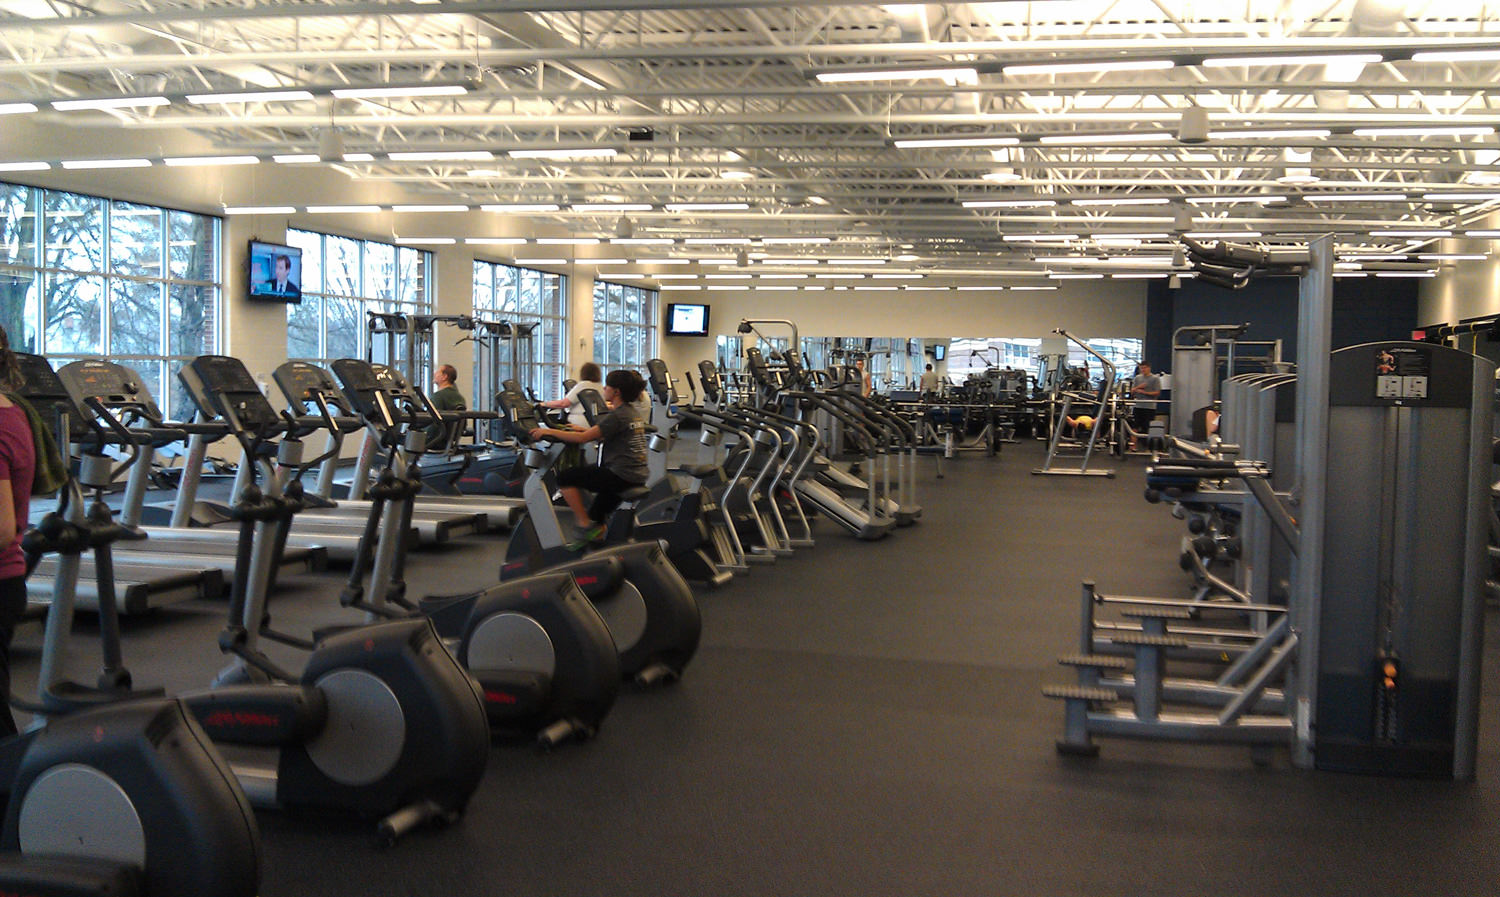 college fitness center Spring 2018 fitness center hours monday - friday 7 am - 1 pm, 4 - 7 pm closed from 1 - 4 pm.